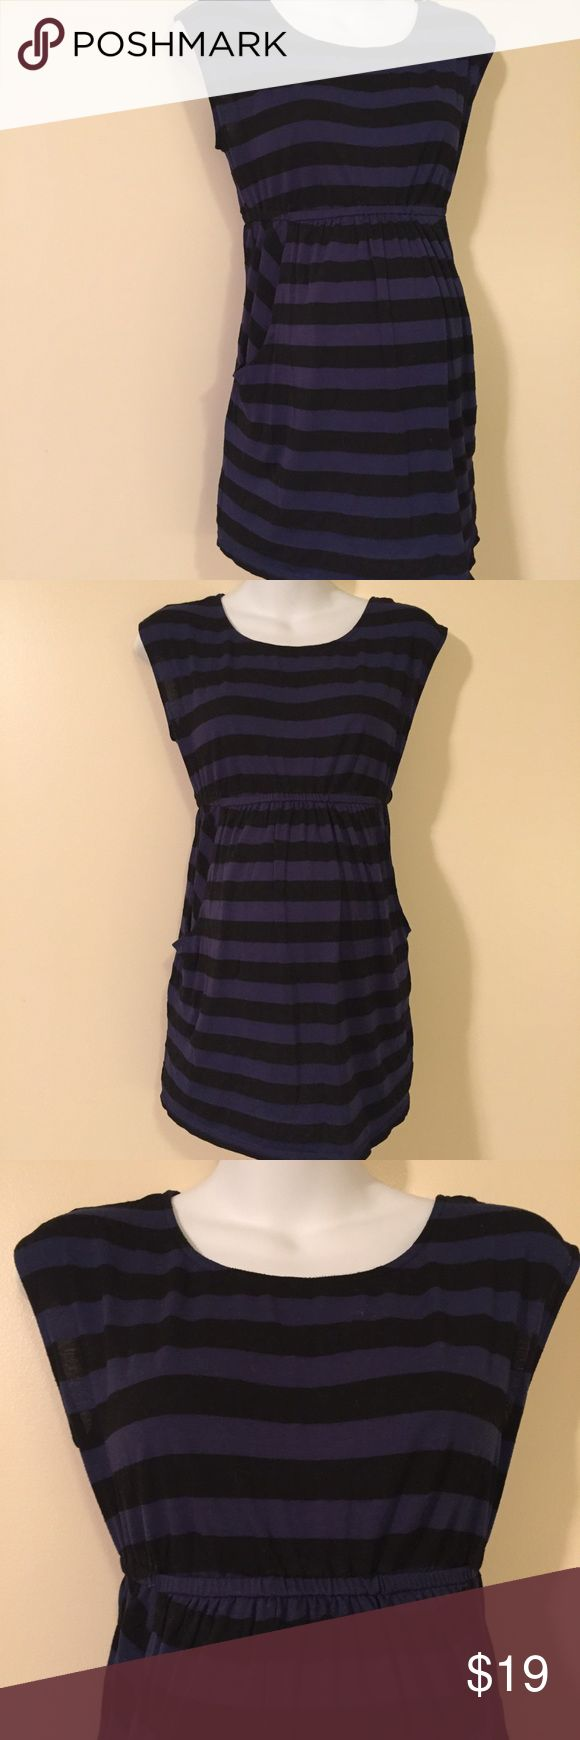 Pea in a pod maternity tunic dress top medium Great condition maternity tunic/mini dress great with some skinny jeans or perfect as a swim cover-up! By Pea in a pod!!! Super cute pockets :) bundle for savings A Pea in the Pod Tops Tunics